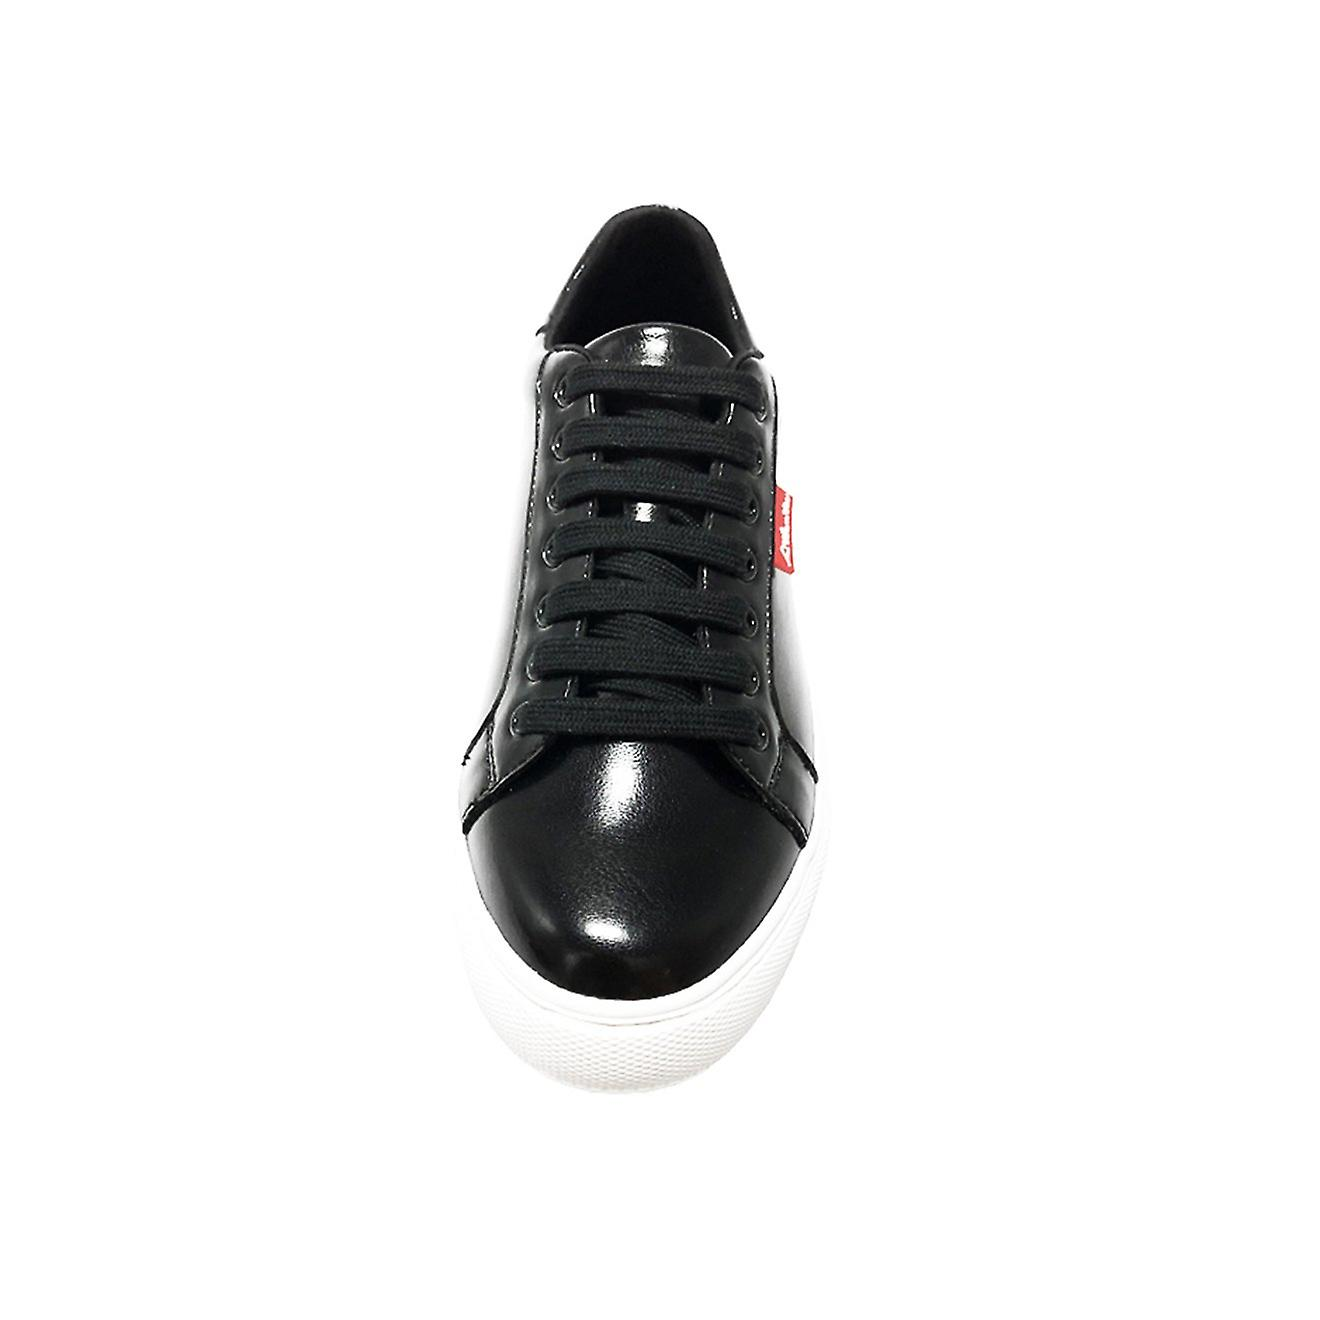 Original sin black sneakers